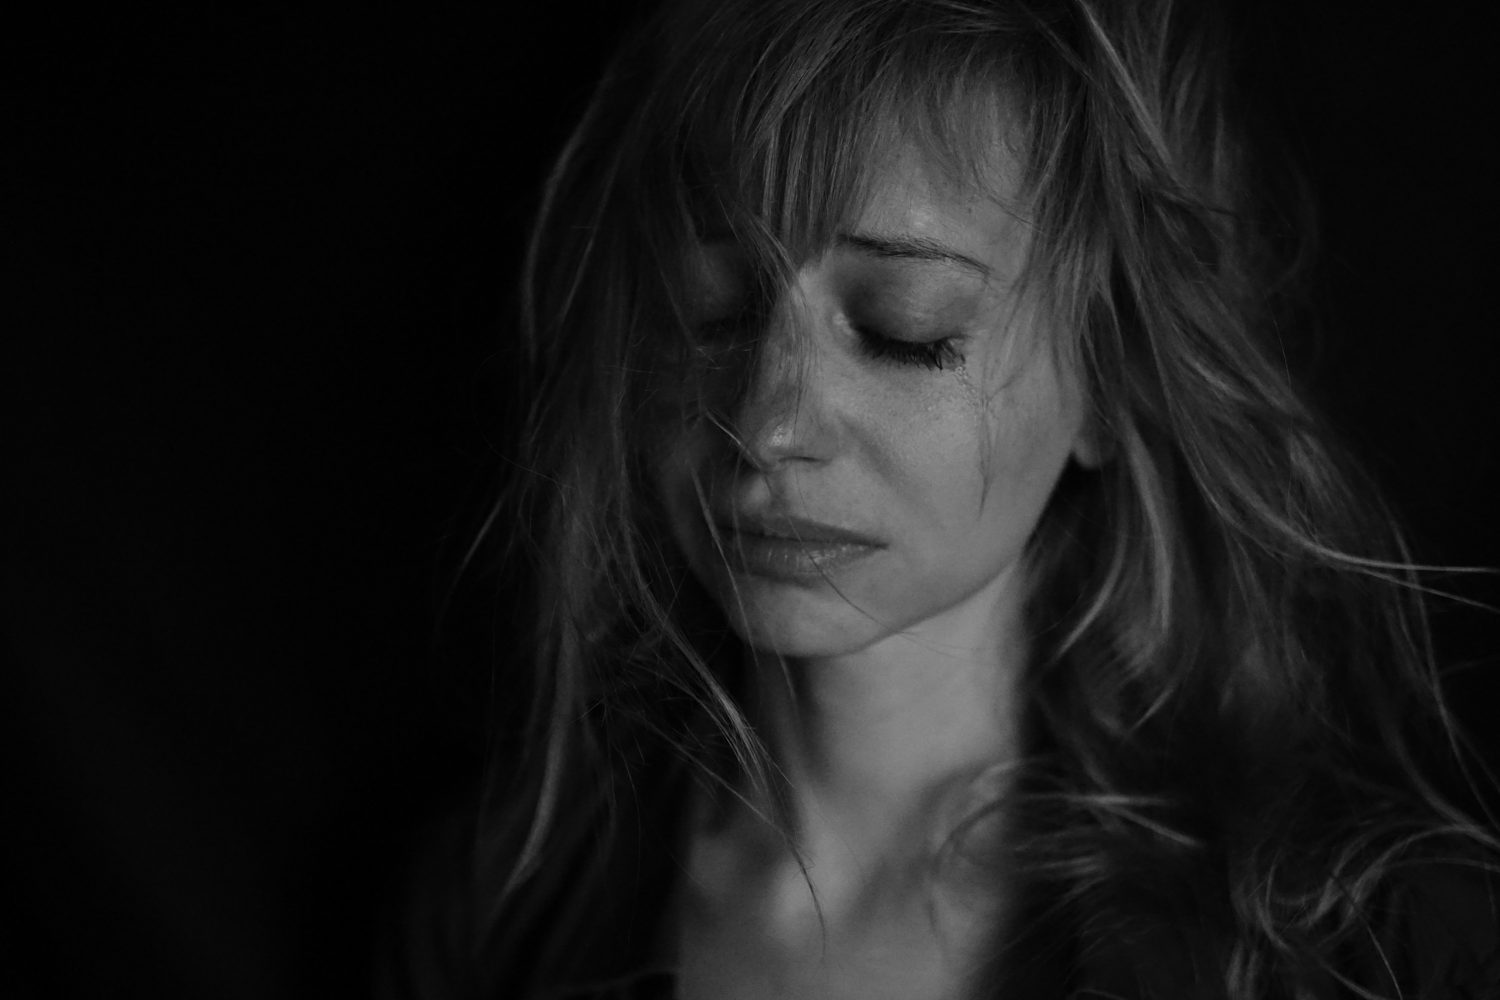 5 Reasons Why Crying Actually Does Make You Stronger